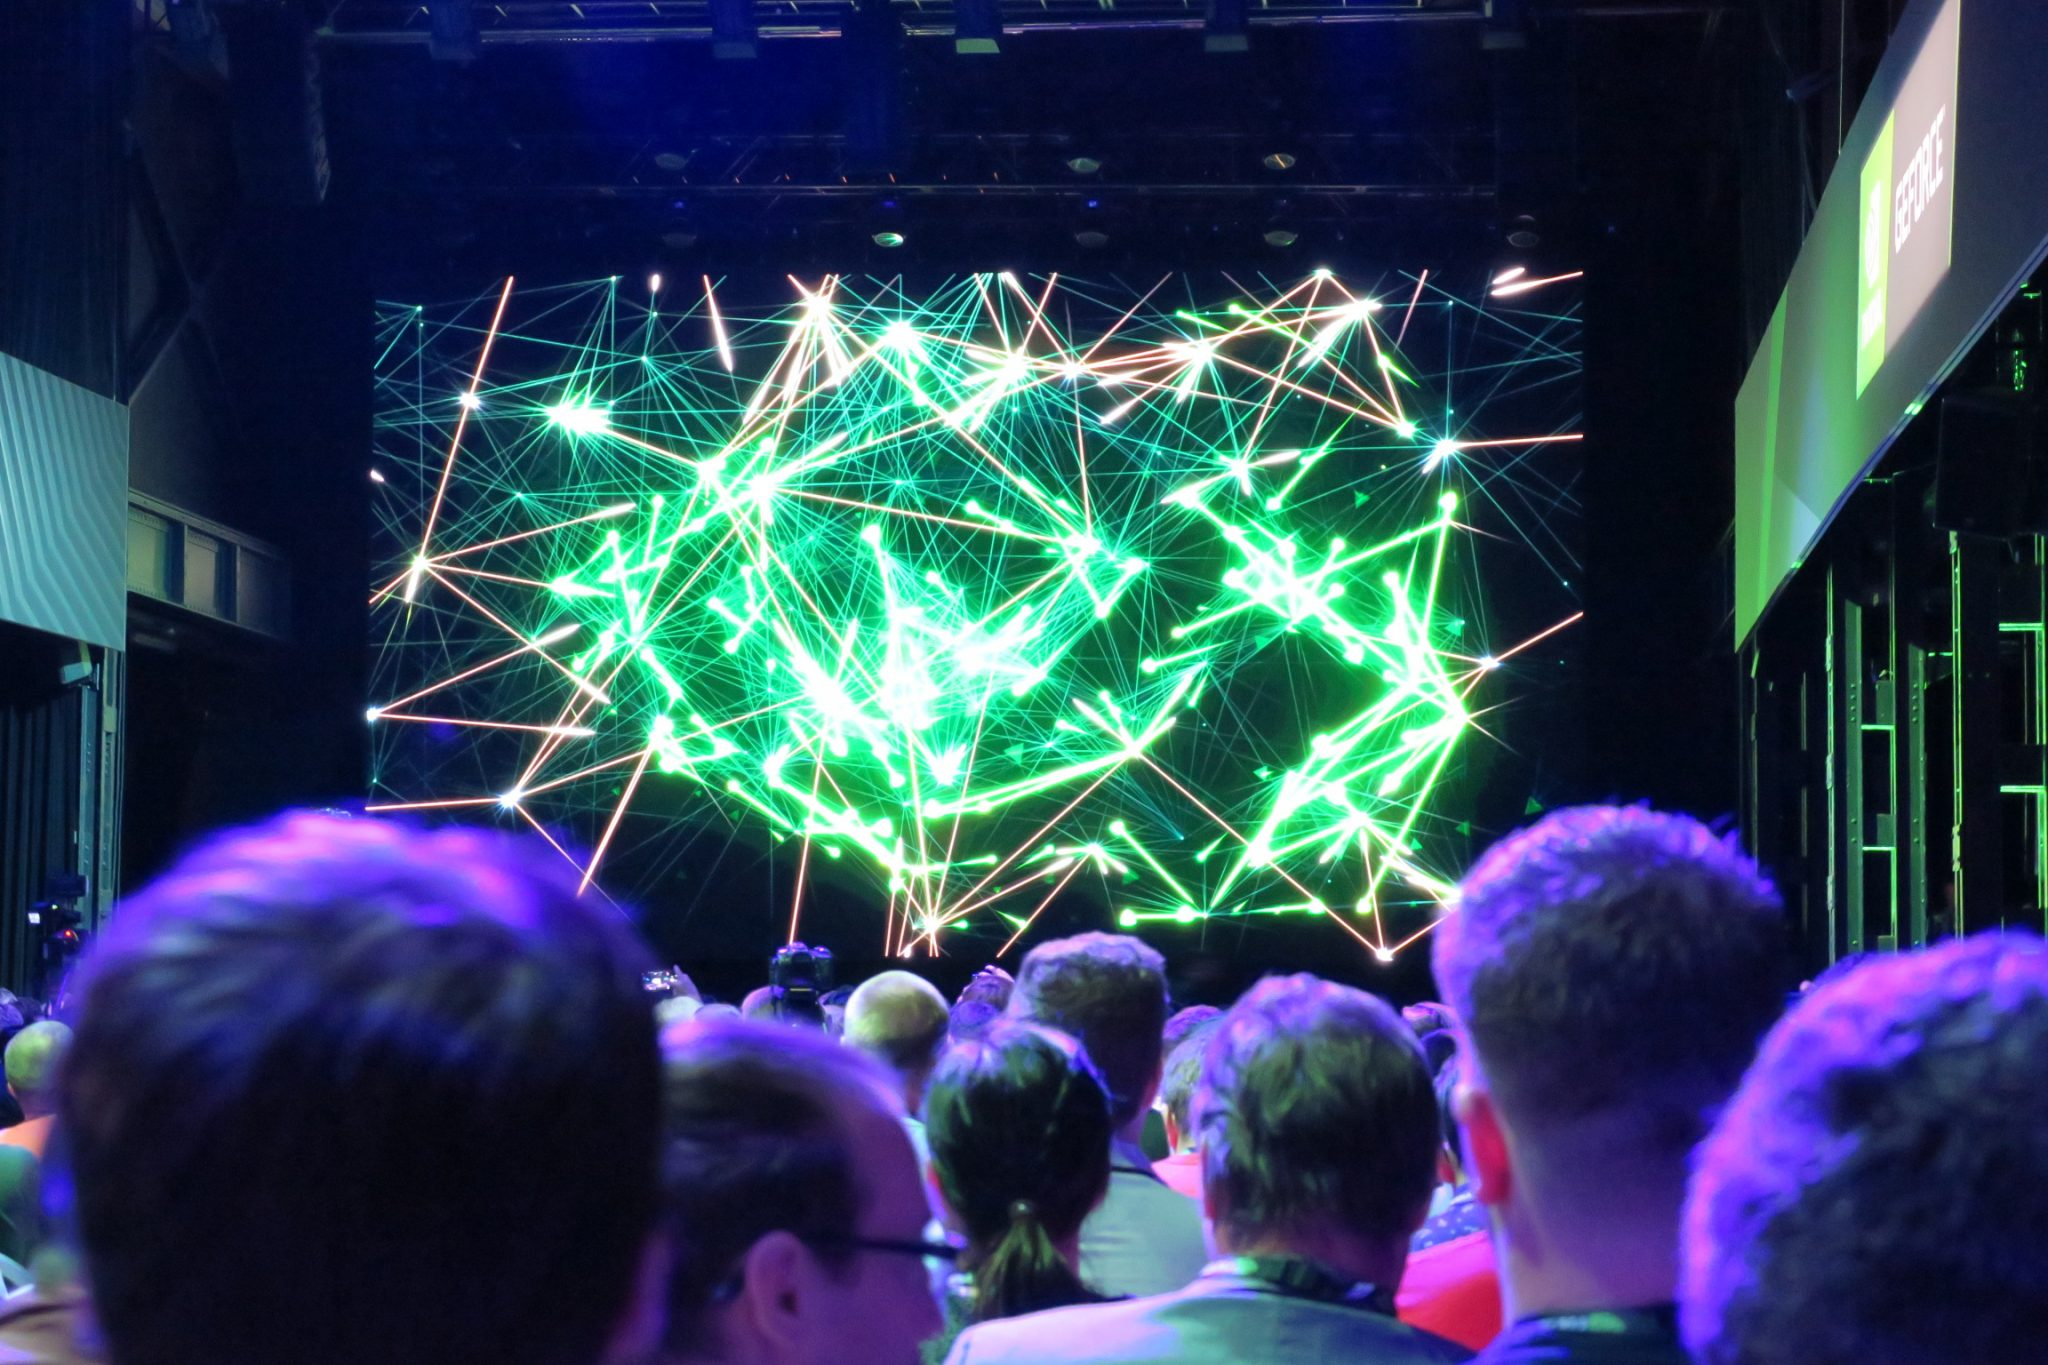 GeForce RTX 2080 GeForce Celebration Gamescom 2018 Tagebuch Tag 1